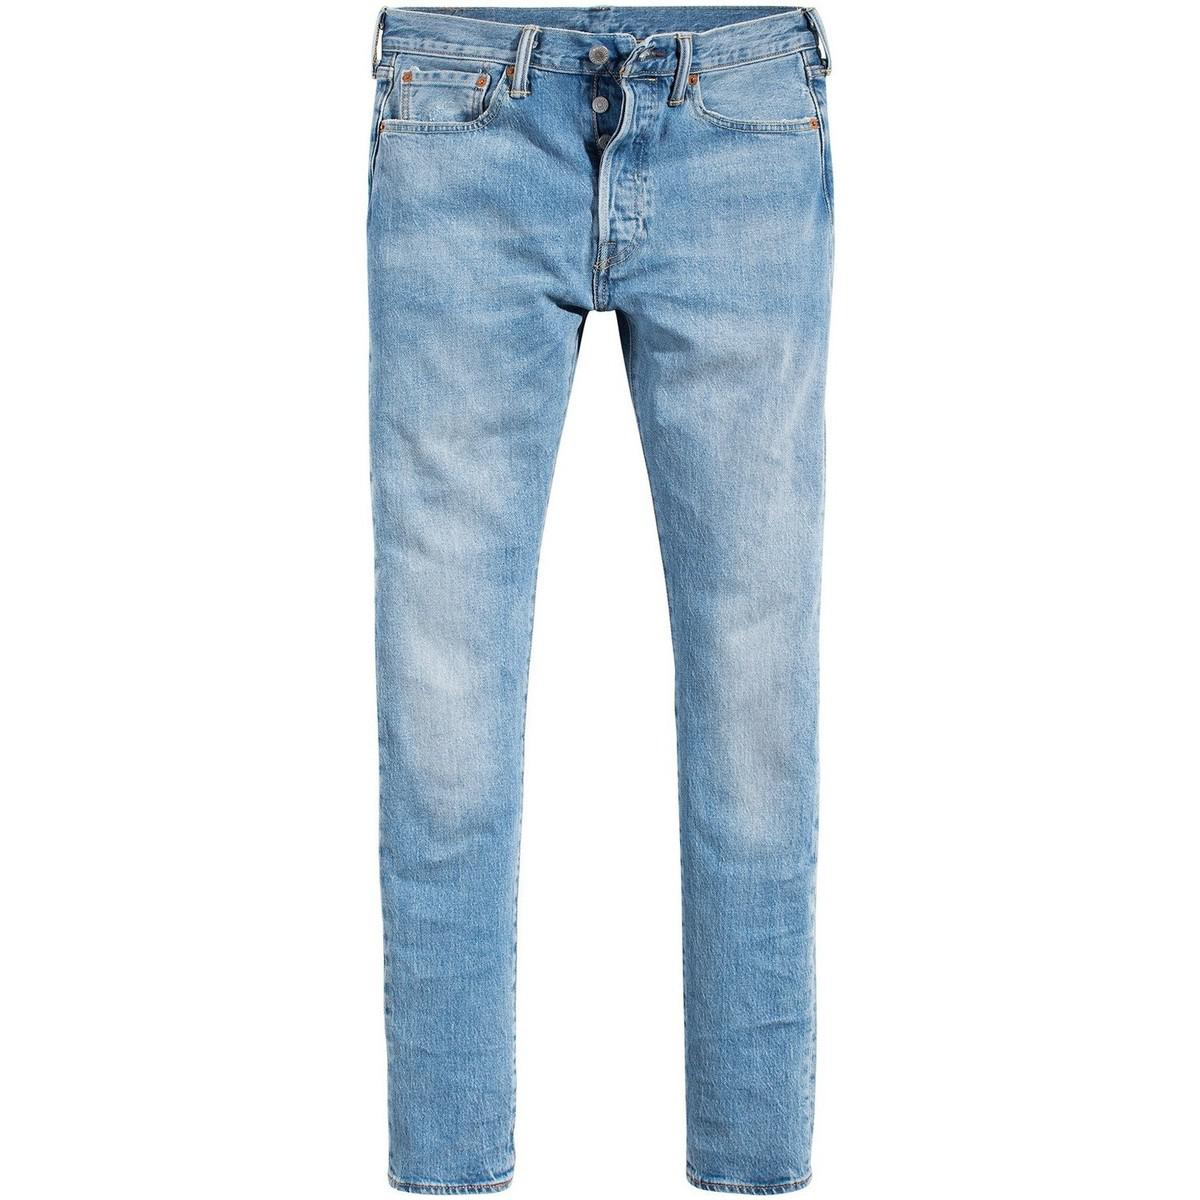 These Pull-On Skinny Jeans are crafted in a stretchy denim construction and feature an elastic waistband for easy on-and-off. Equally cool as they are functional, this pair is punctuated with faux and real pockets for that classic jean look.